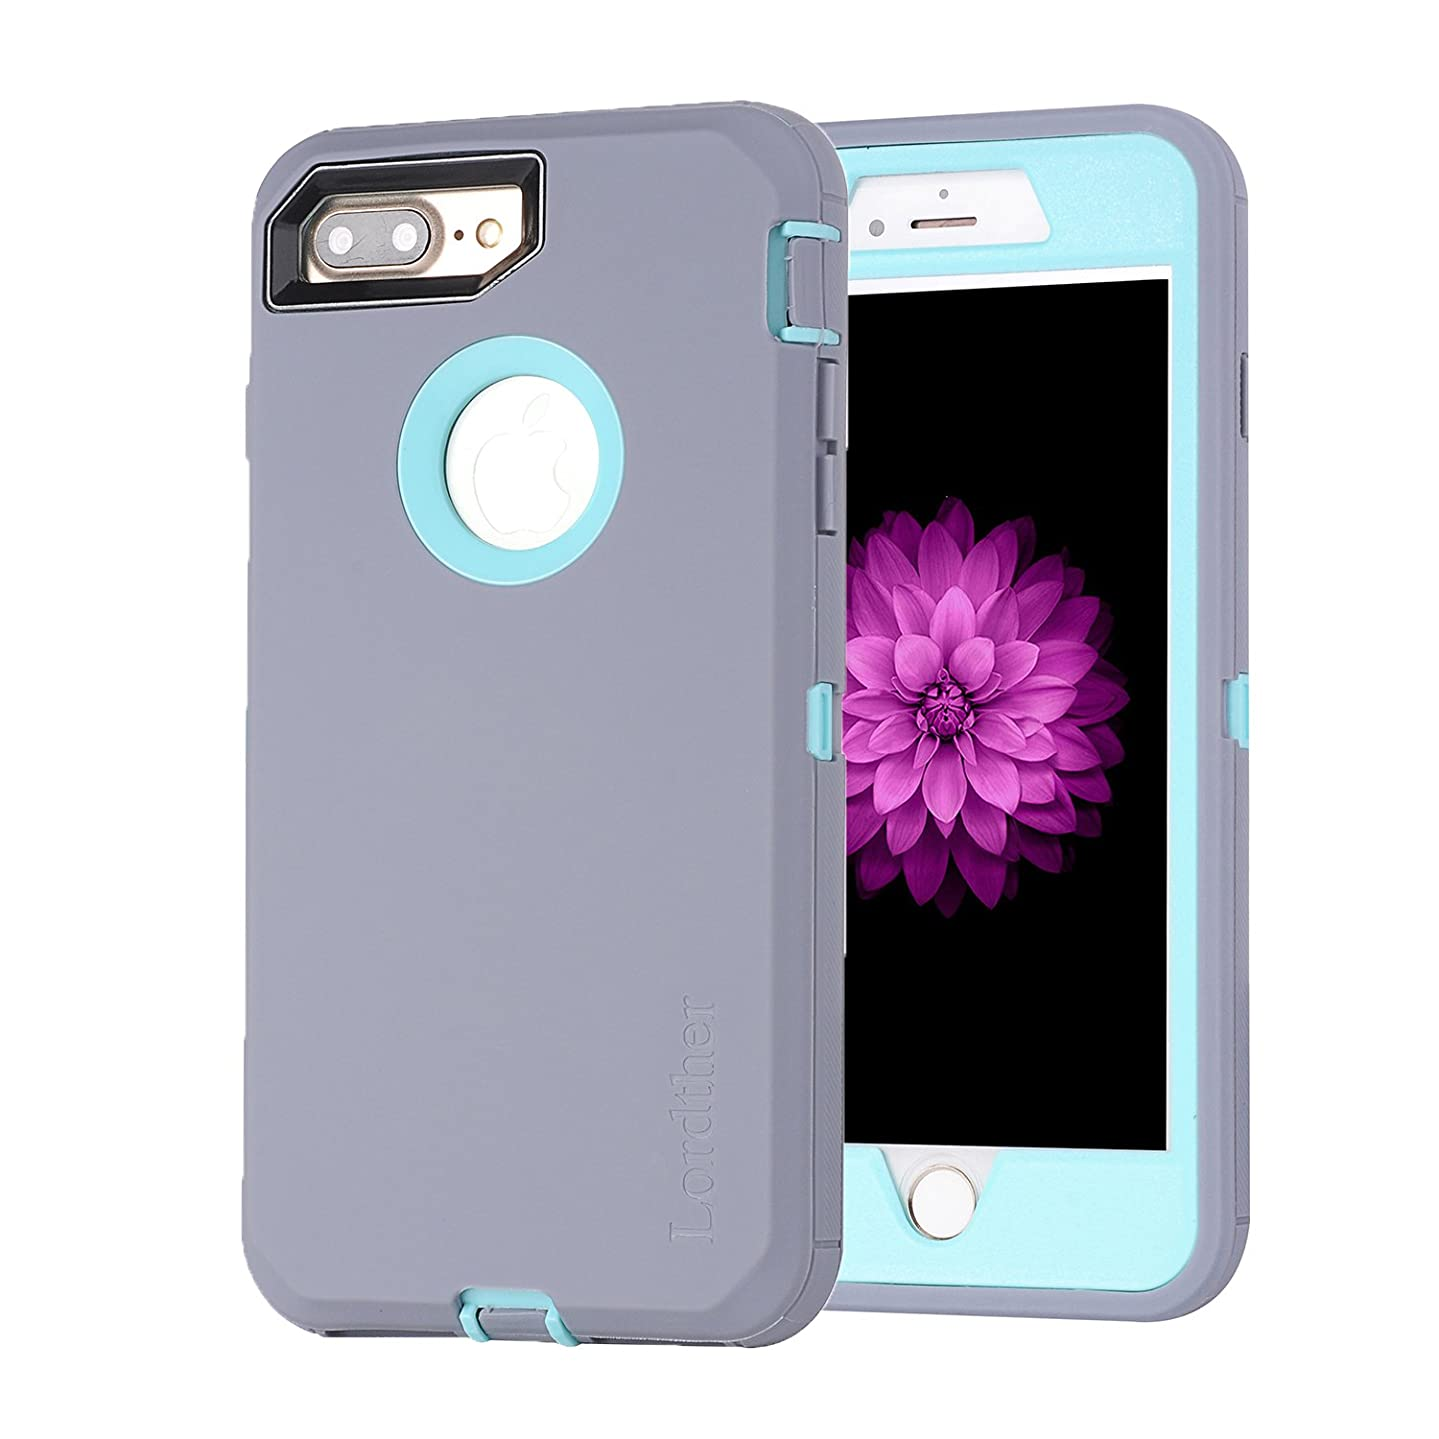 Lordther 5.5-Inch iPhone 8 Plus Case, ShieldOn Series [Military Grade] [Heavy Duty] Synthetic Rubber TPU Case Covers with [Bonus Screen Protector] for iPhone 7 Plus&iPhone 8 Plus (Grey/Blue)